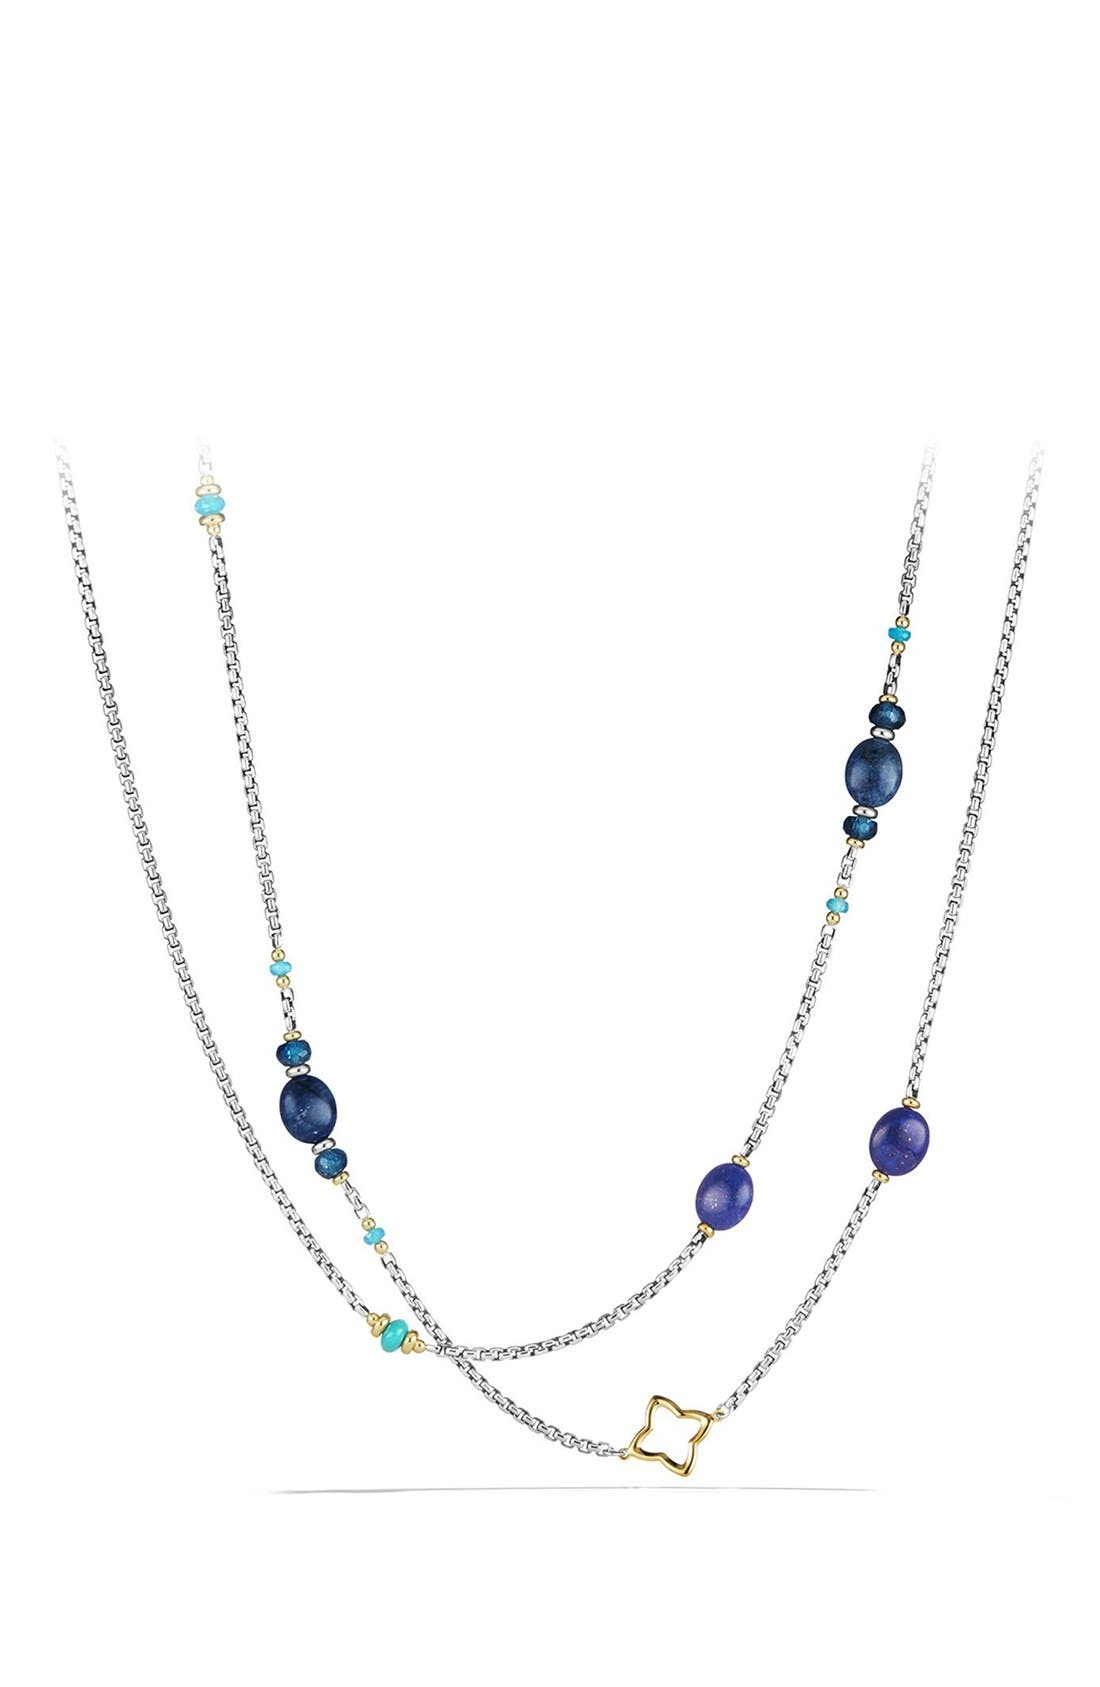 'Bead and Chain' Necklace,                         Main,                         color, SILVER/ GOLD/ TURQUOISE